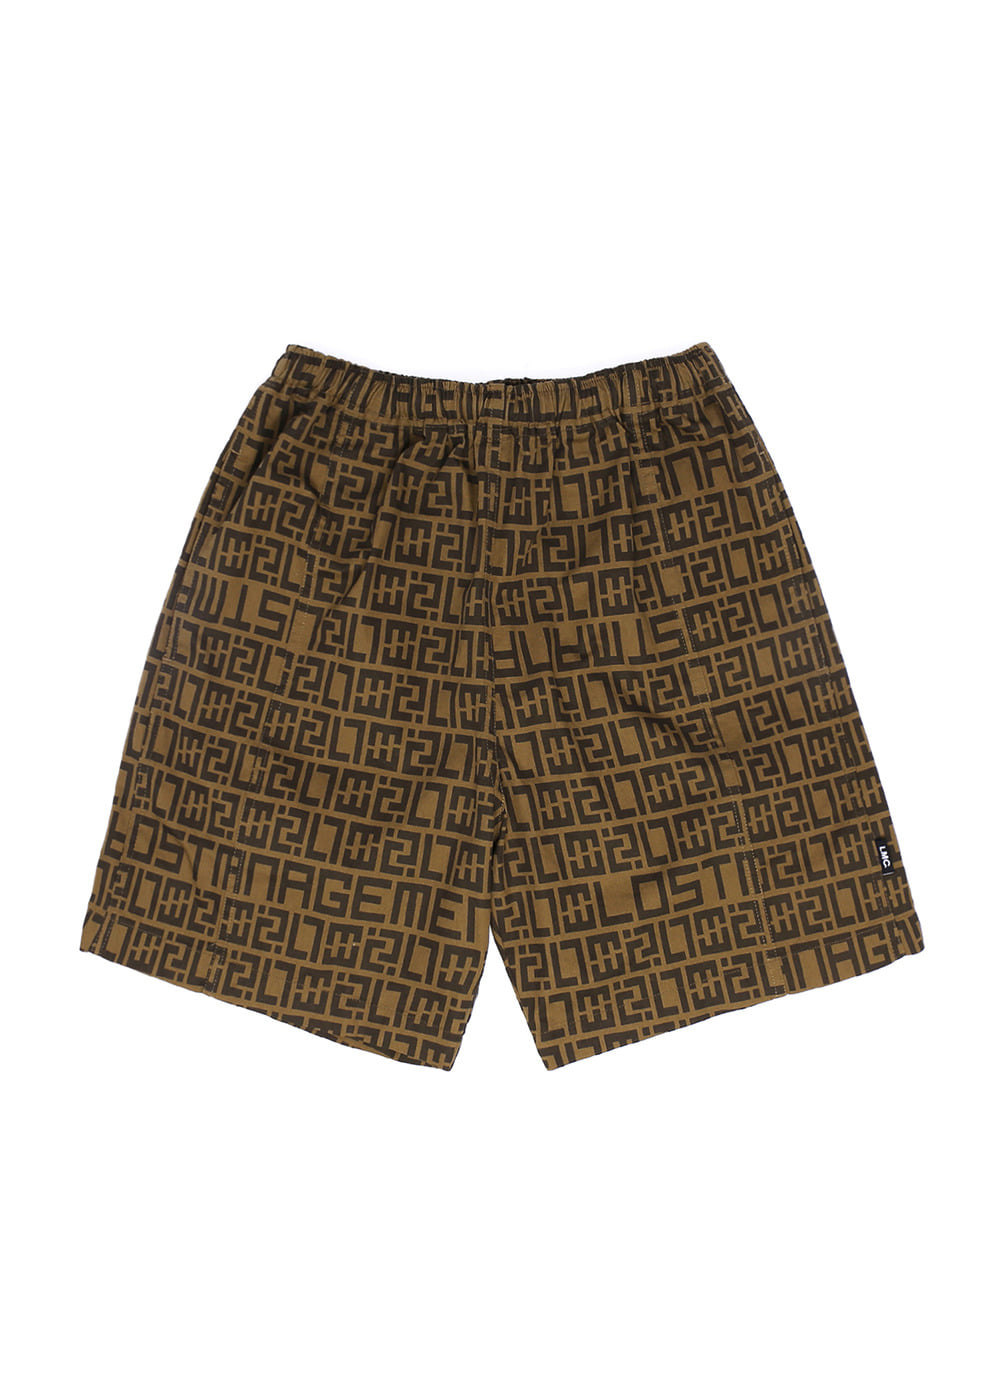 LMC LUX PTTN SHORTS brown